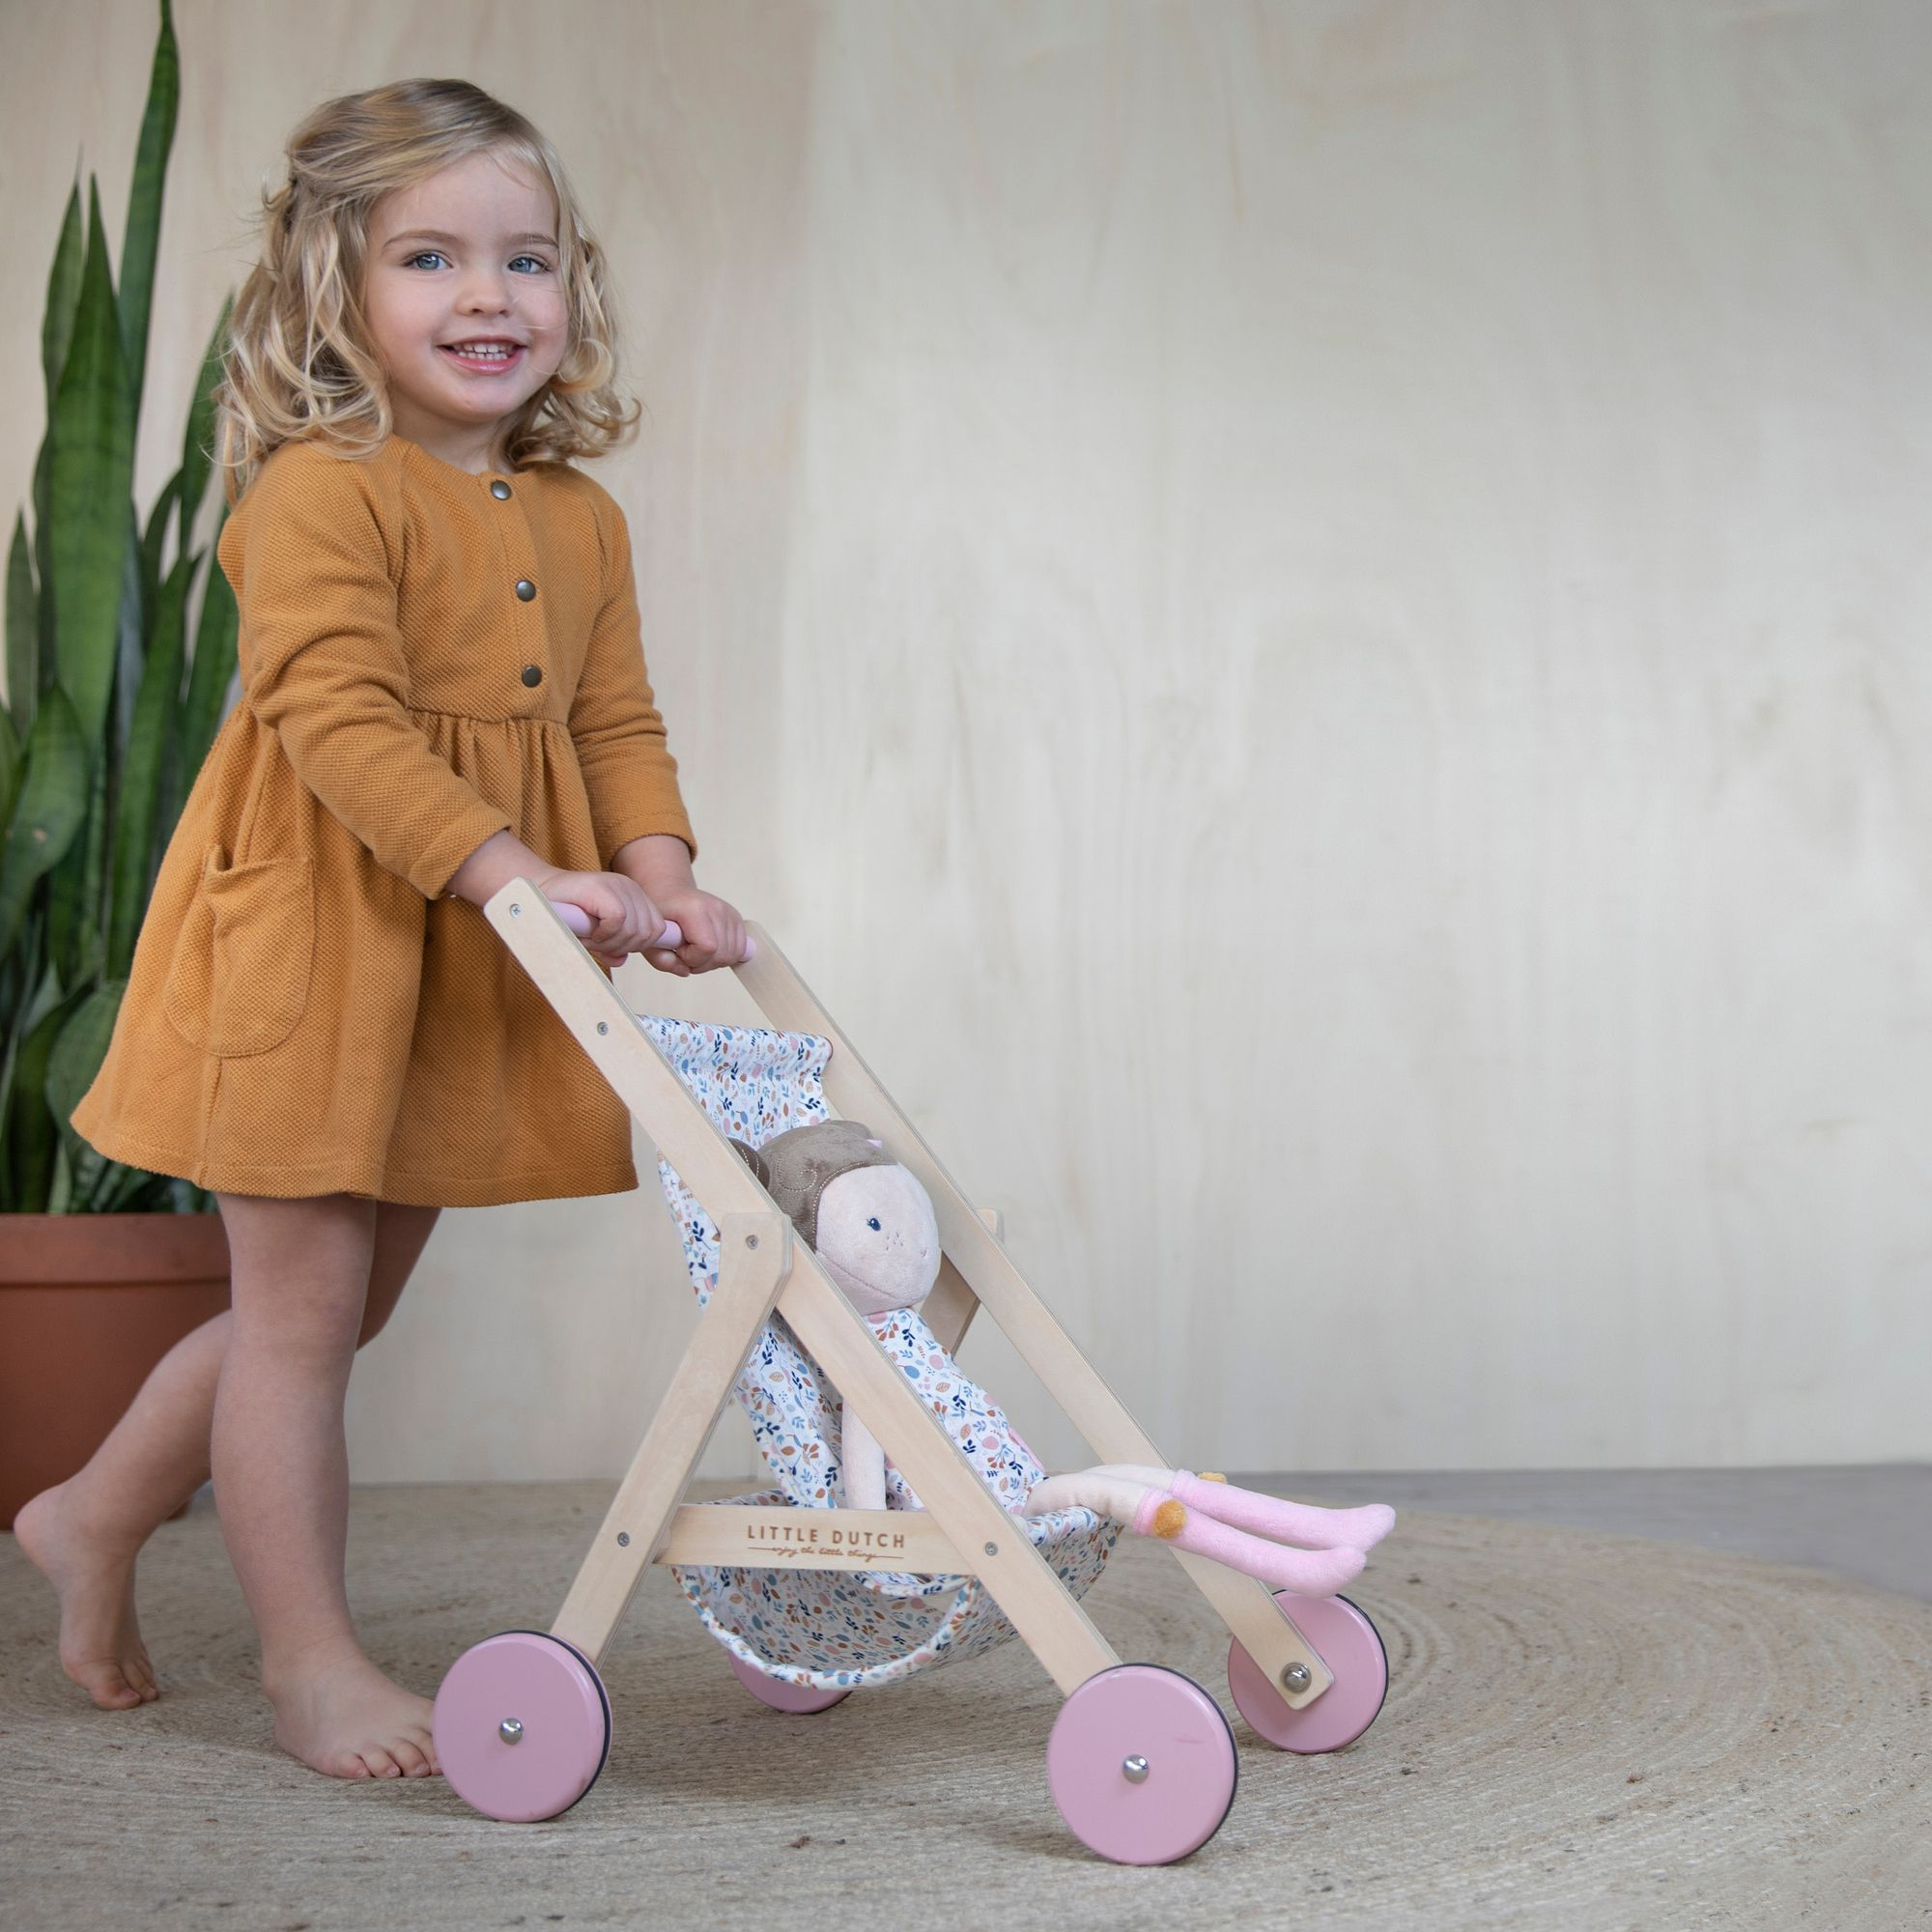 Take your doll for a walk! The wooden doll stroller has a